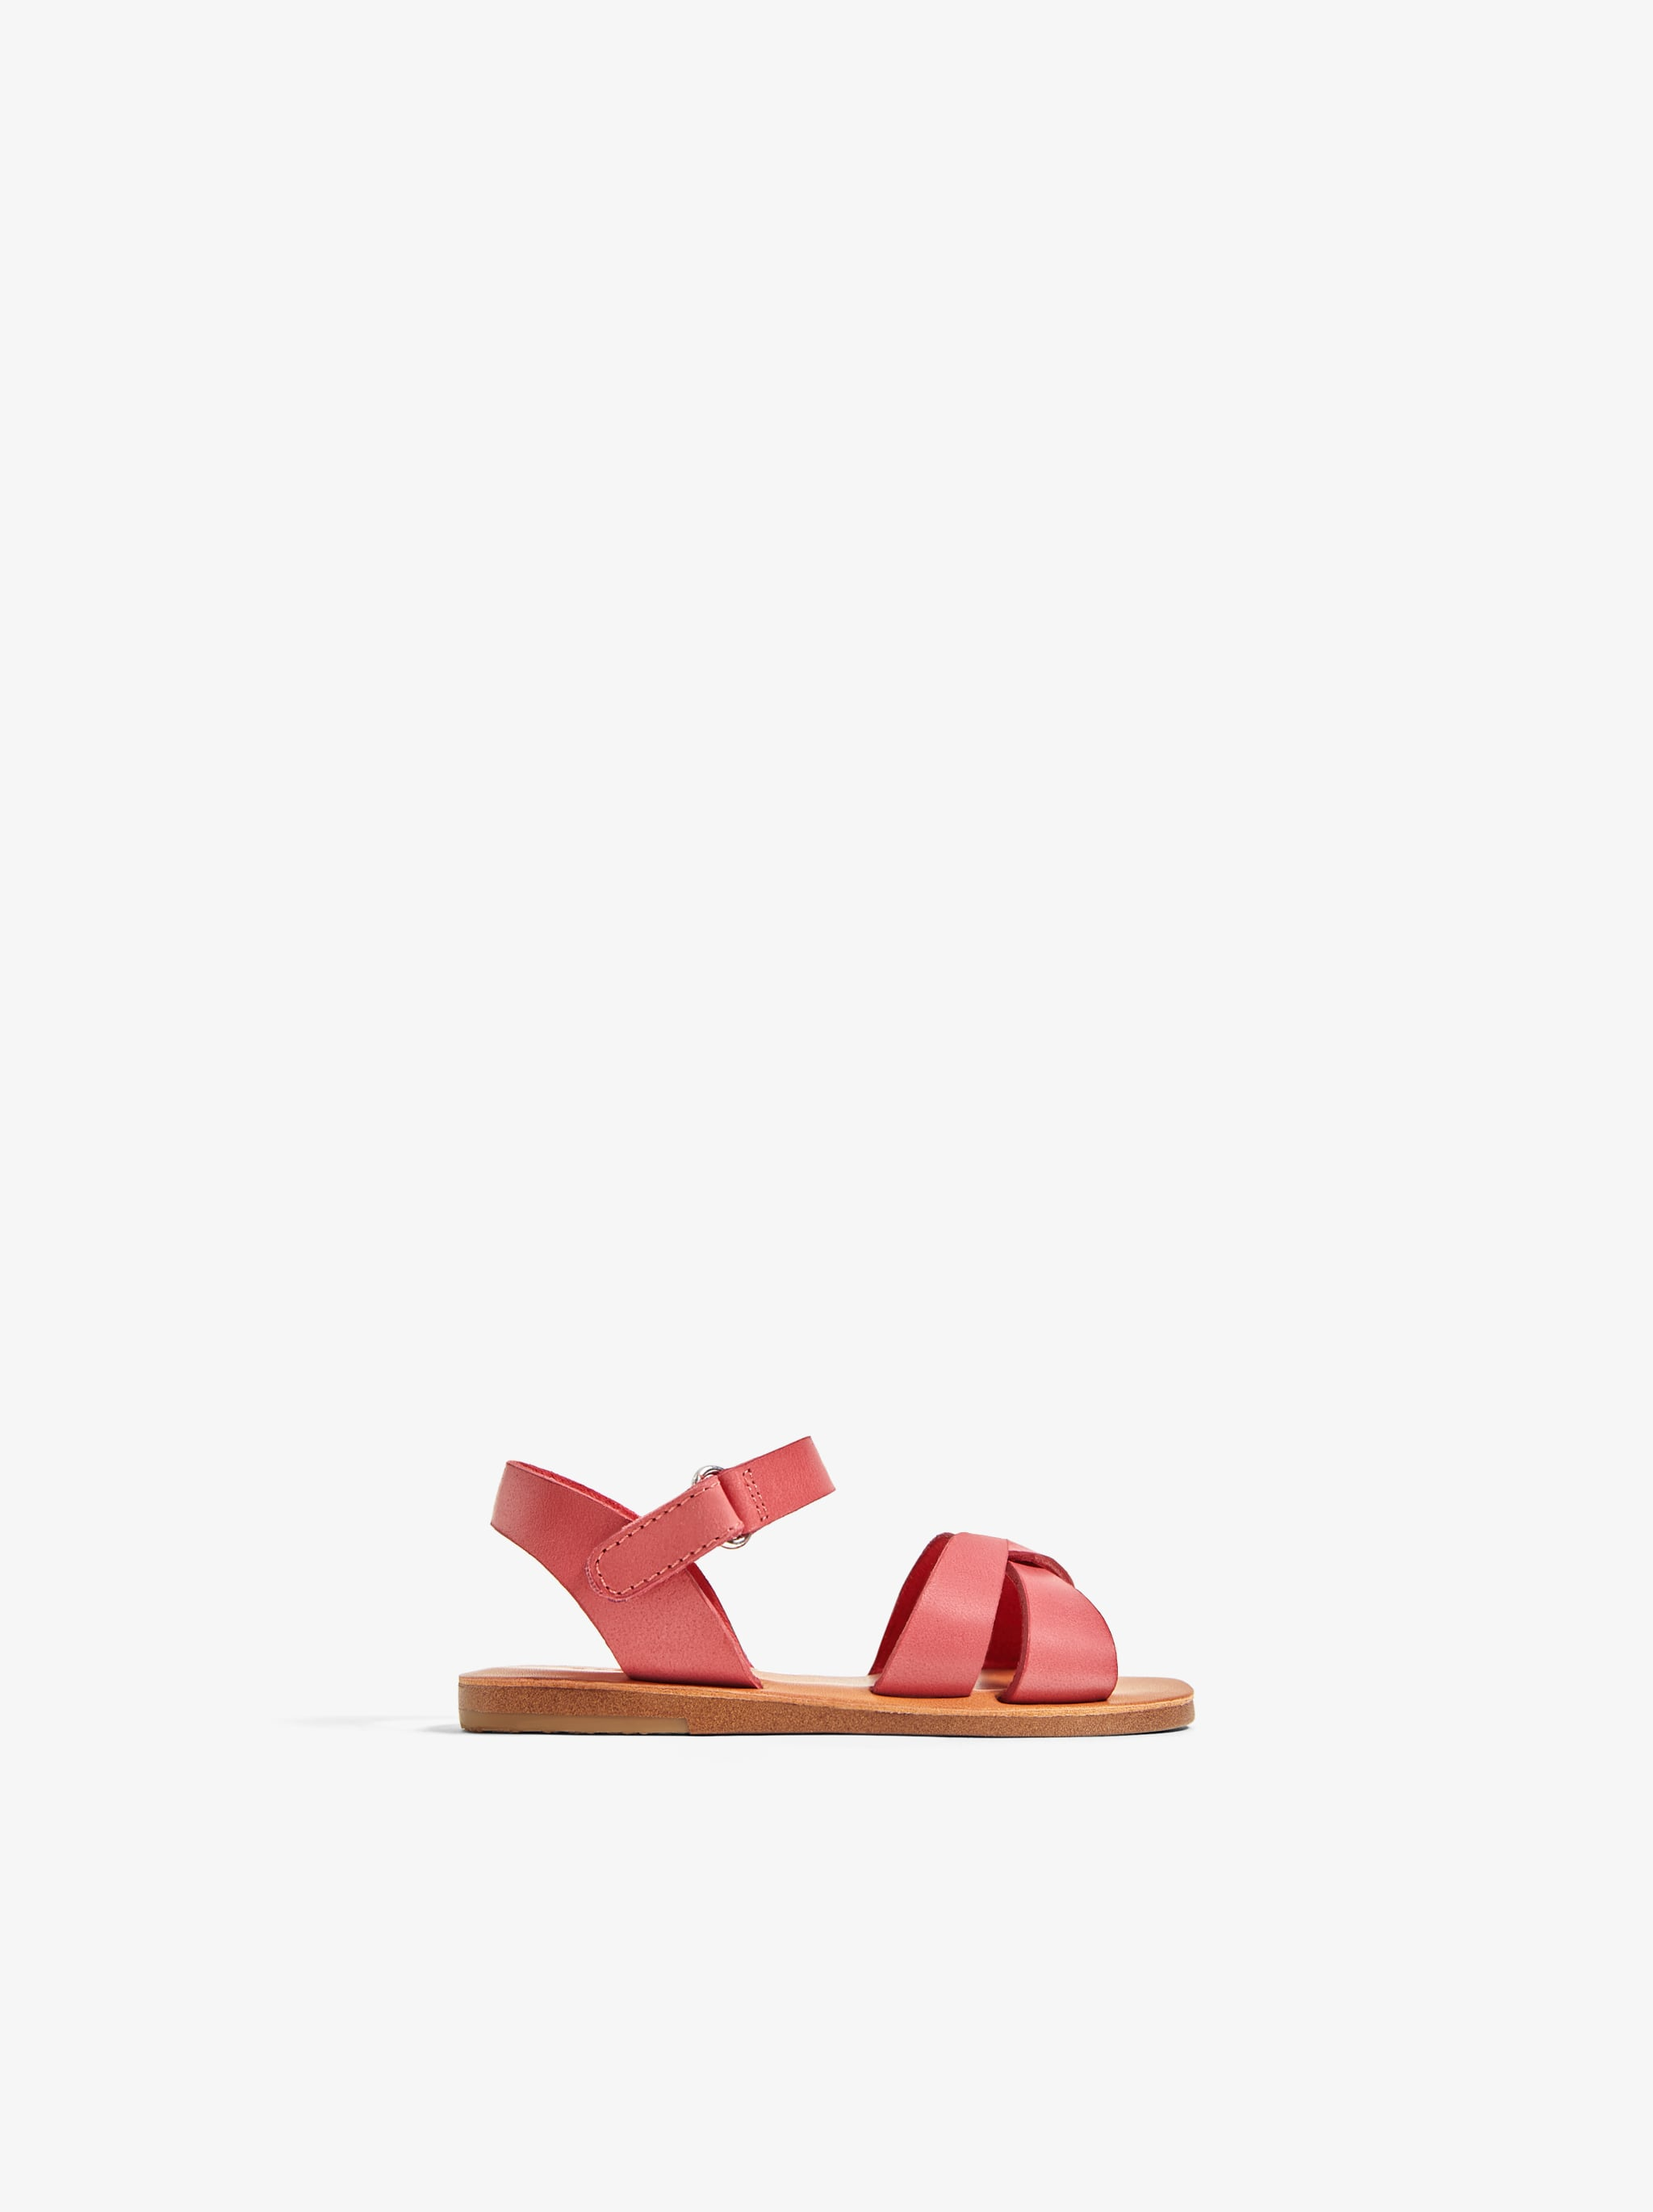 Zara LEATHER SANDALS WITH STRAPS